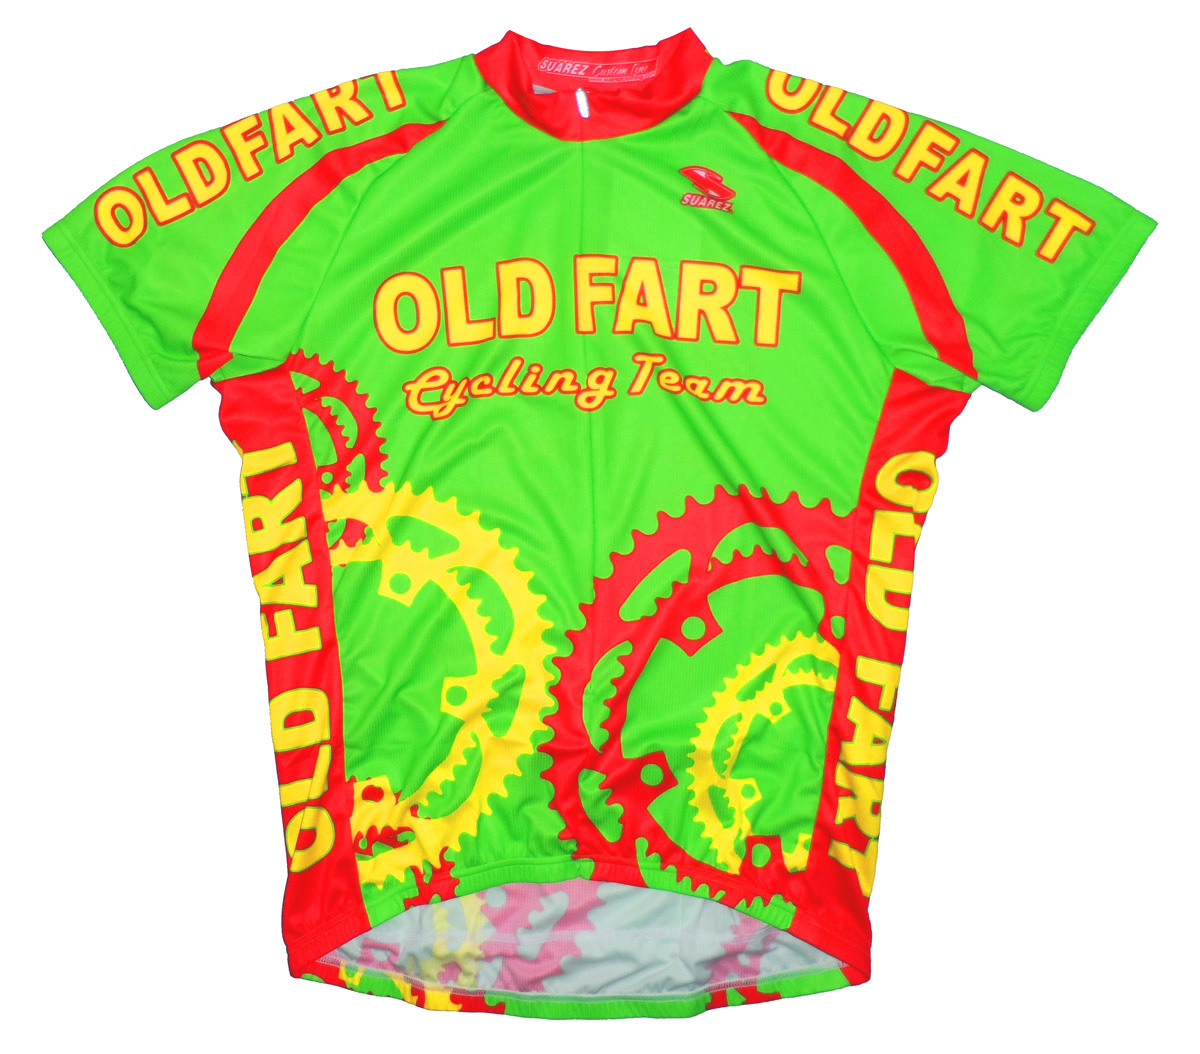 Old Fart Cycling Team Men S Jersey Bright Lime Green Short